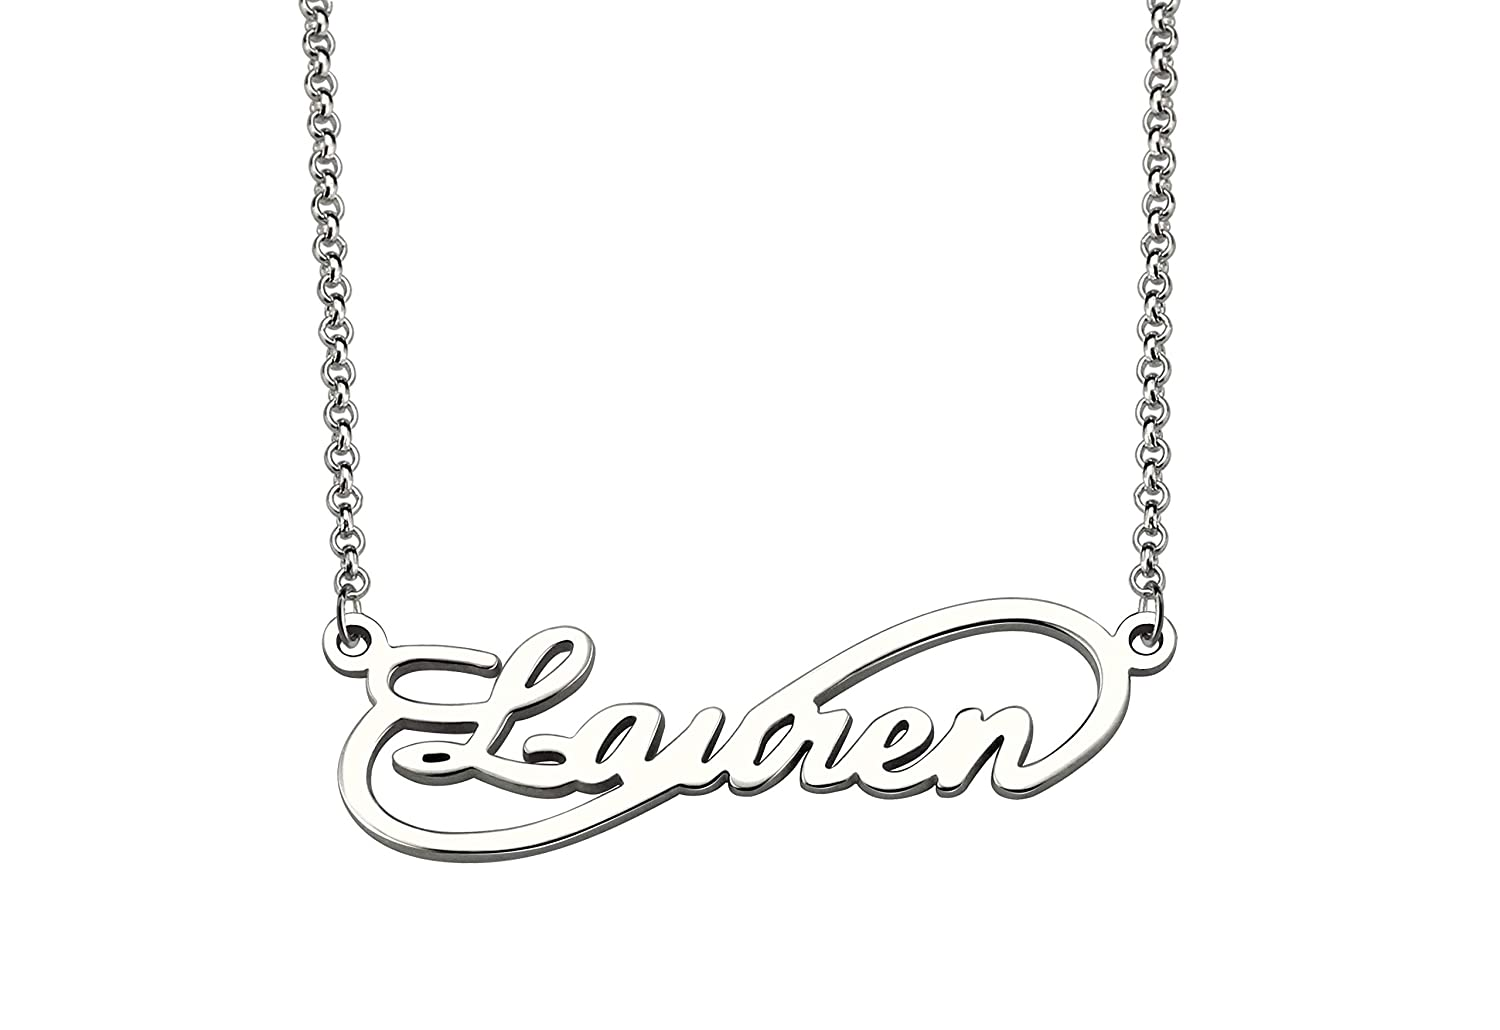 Getname Necklace Infinity Necklace Personalized Single Name Necklace Sterling Silver Pendent Jewelry